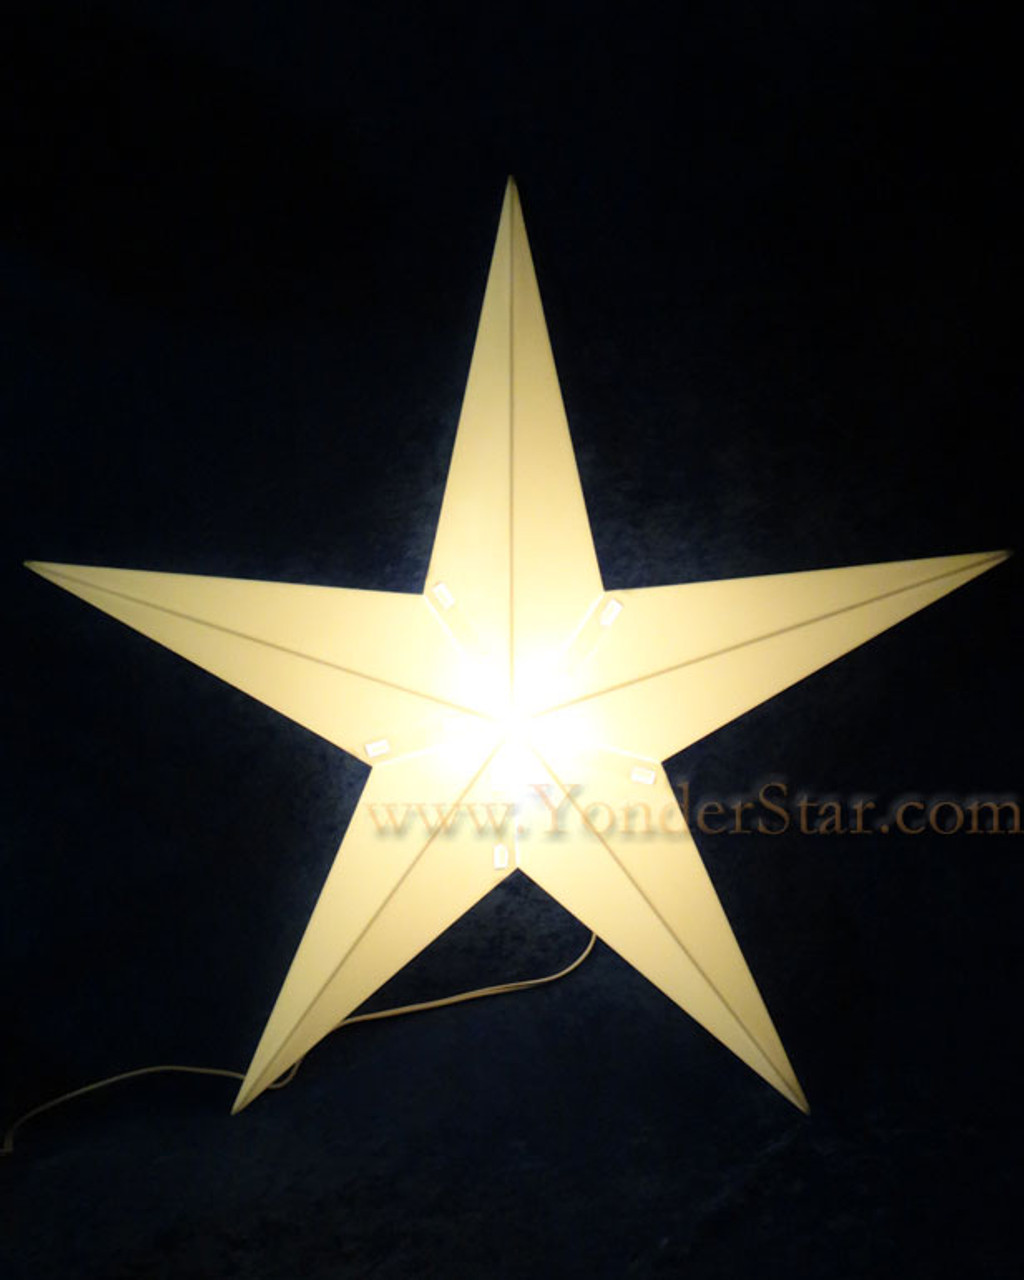 22 outdoor lighted star yonder star christmas shop llc 22 outdoor lighted star aloadofball Choice Image